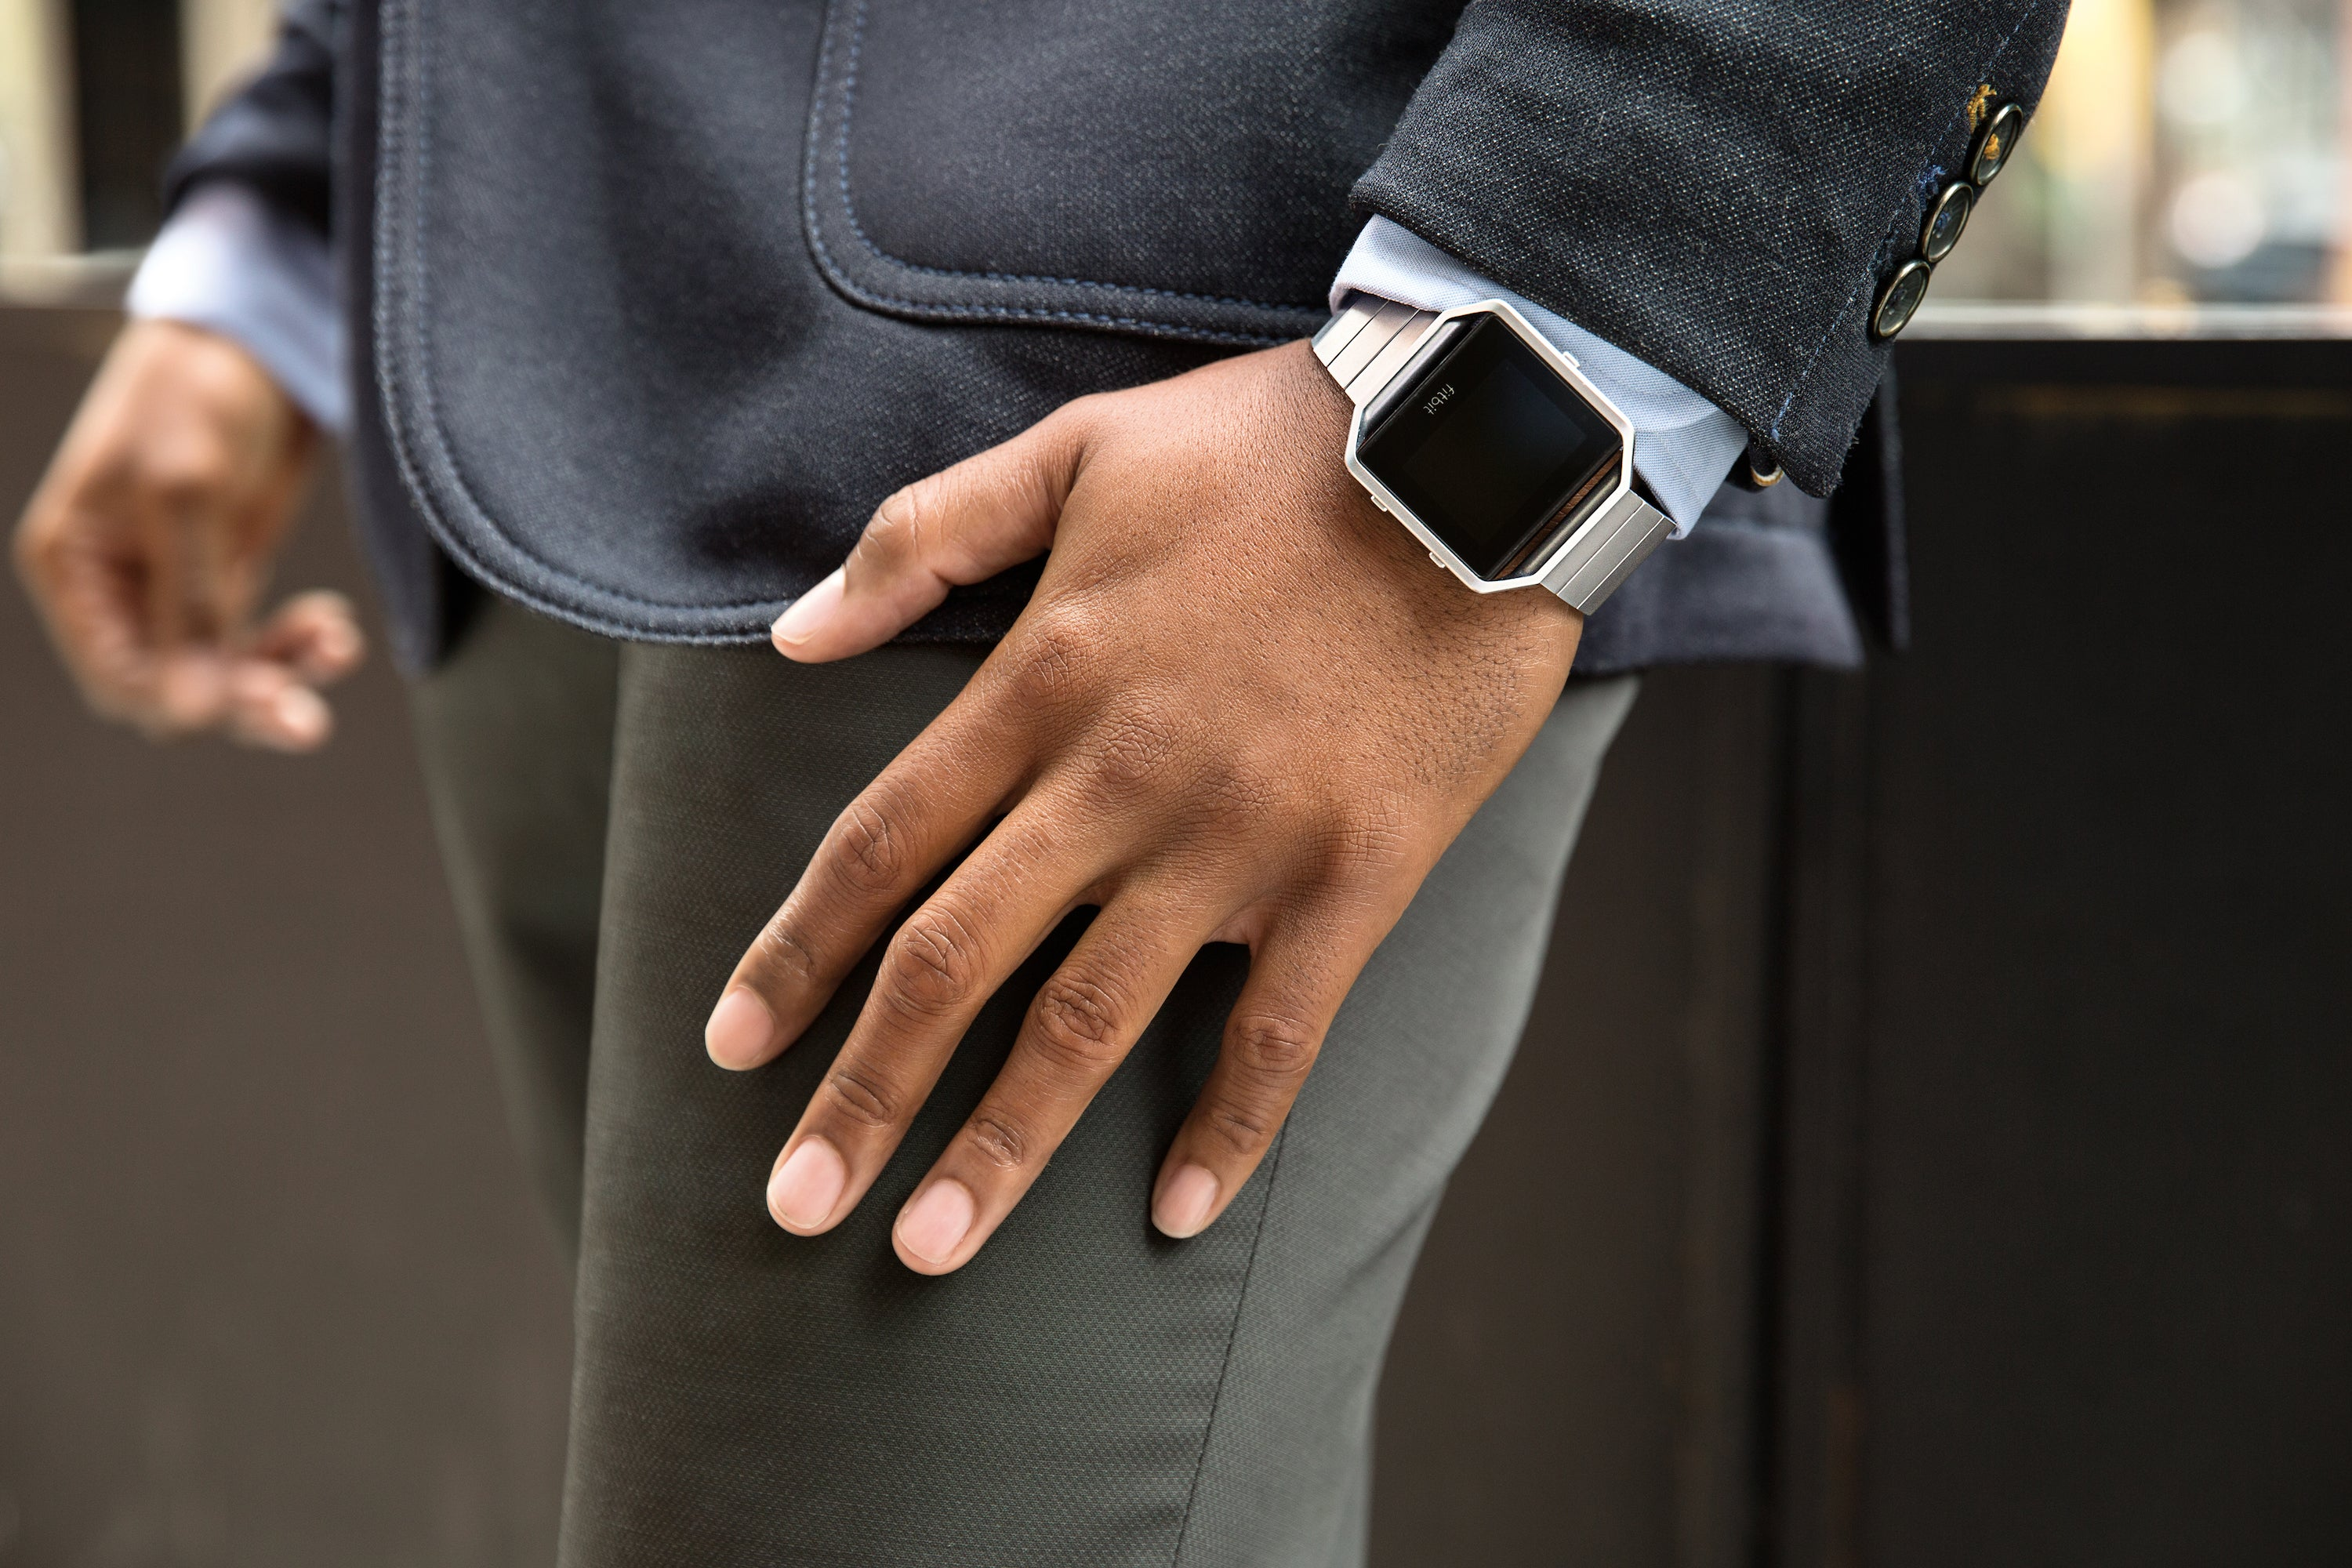 Fitbit Gets Fancy With the New Blaze Fitness Tracker